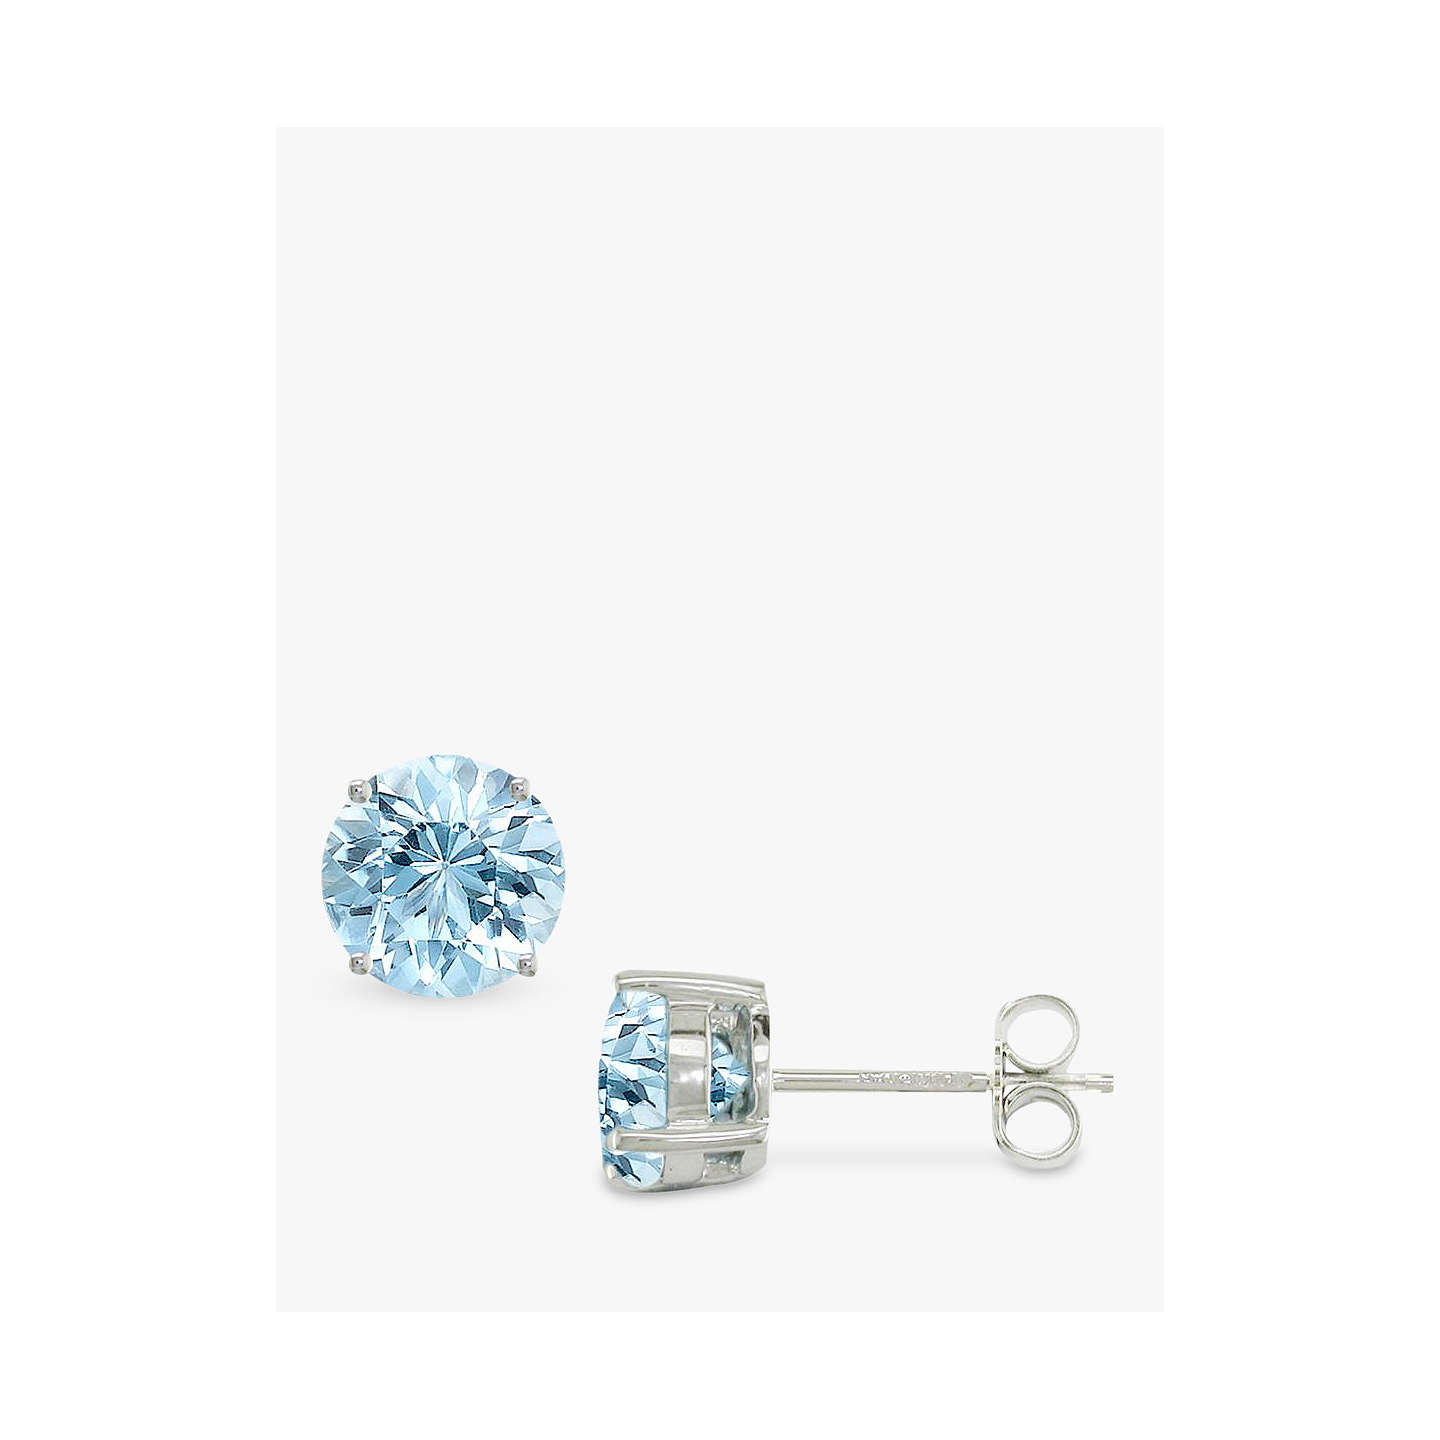 ladies studs halo earrings aqua for diamond assortment larger in earring marine trendy l and view aquamarine gold stud